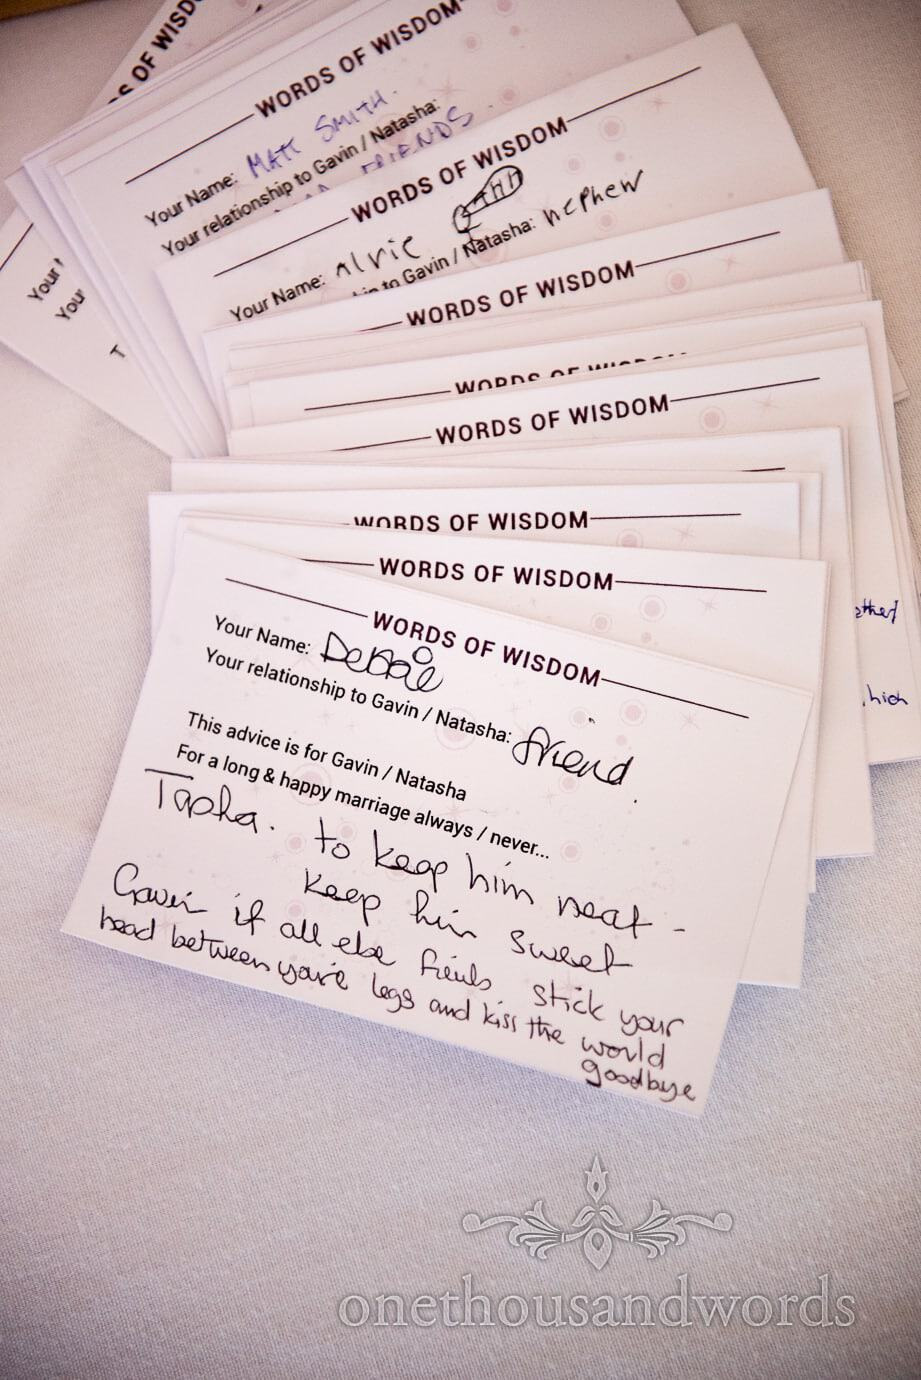 Words of wisdom wedding breakfast quiz cards advice for bride and groom